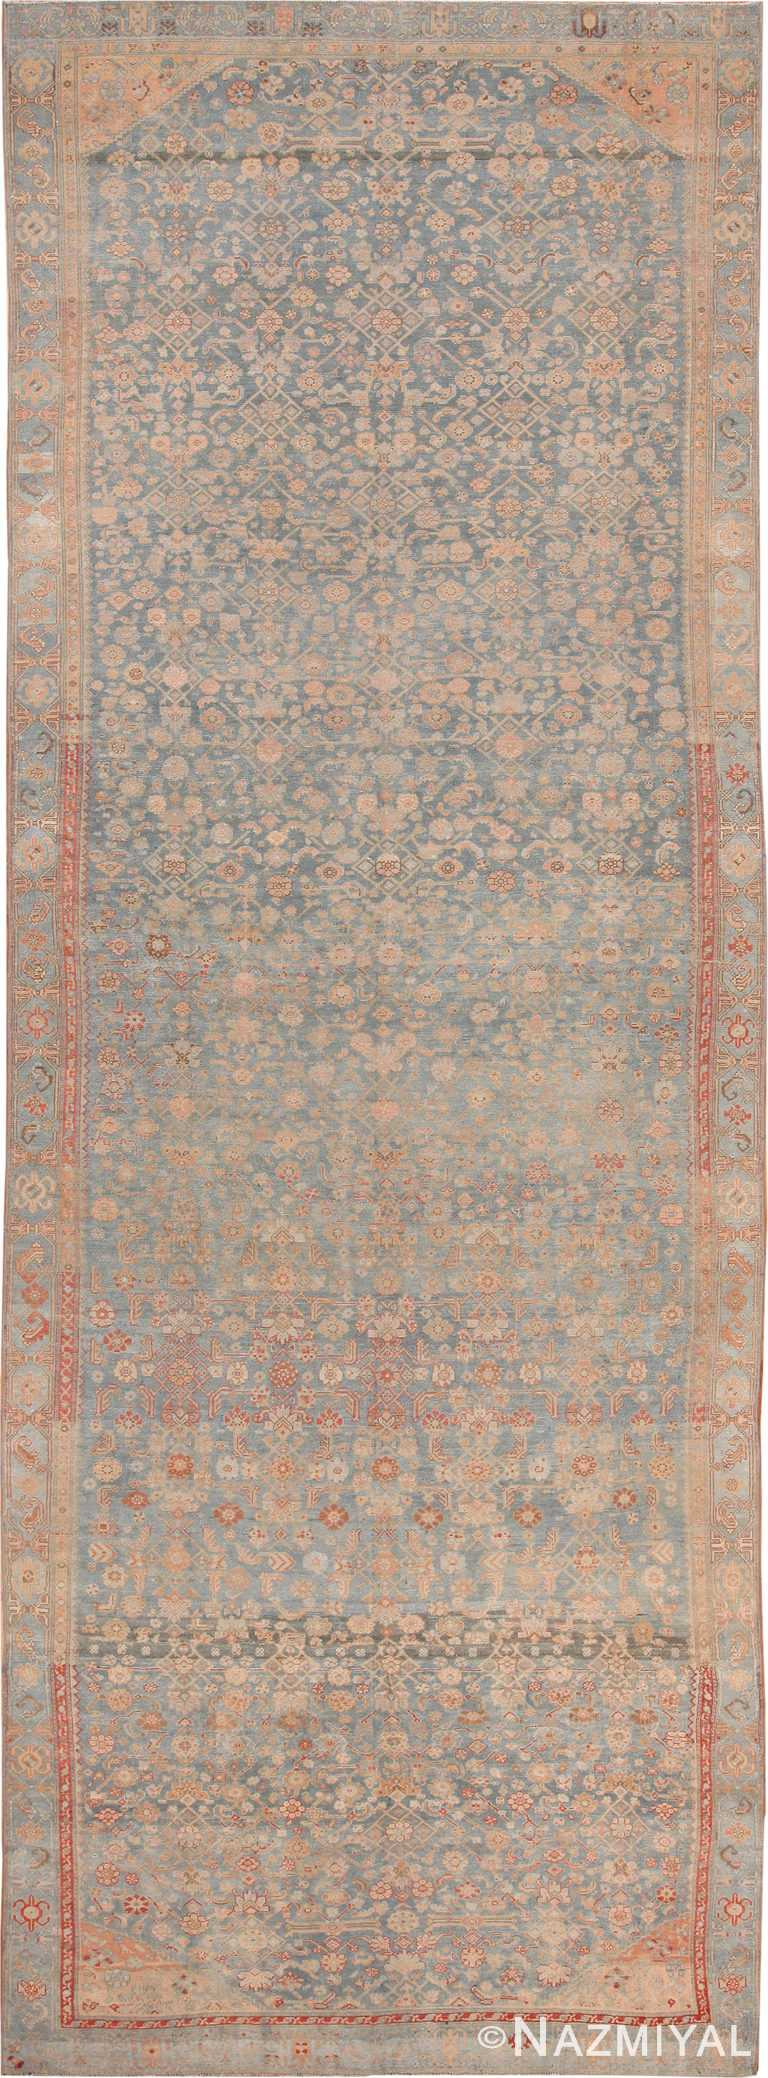 Light Blue Antique Persian Malayer Rug 70434 by Nazmiyal NYC